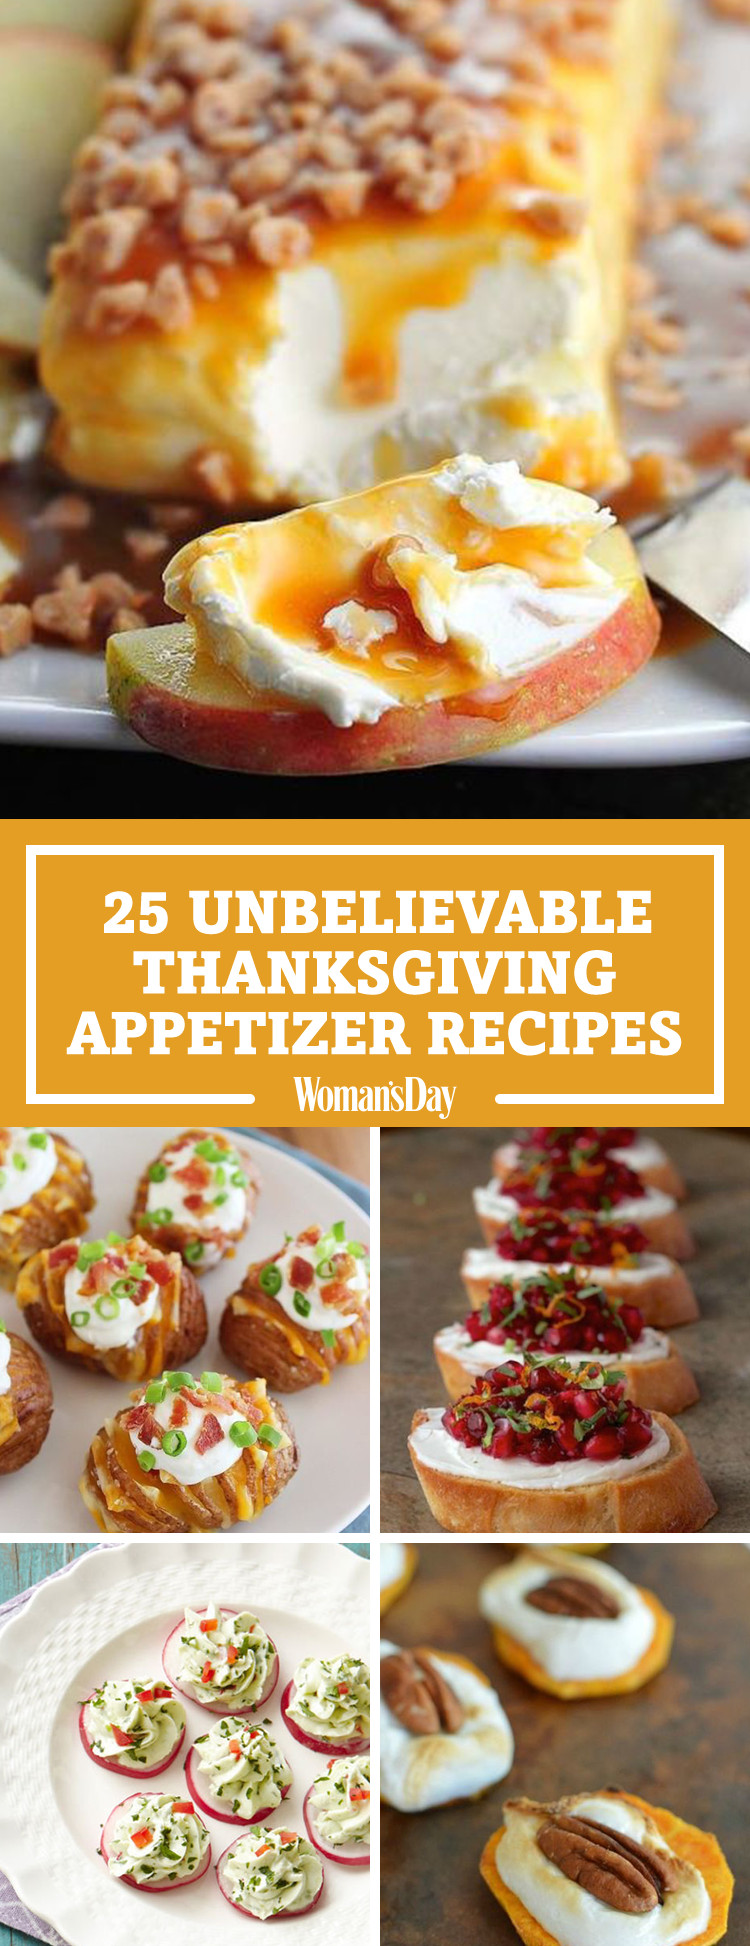 Best Appetizers For Thanksgiving  34 Easy Thanksgiving Appetizers Best Recipes for